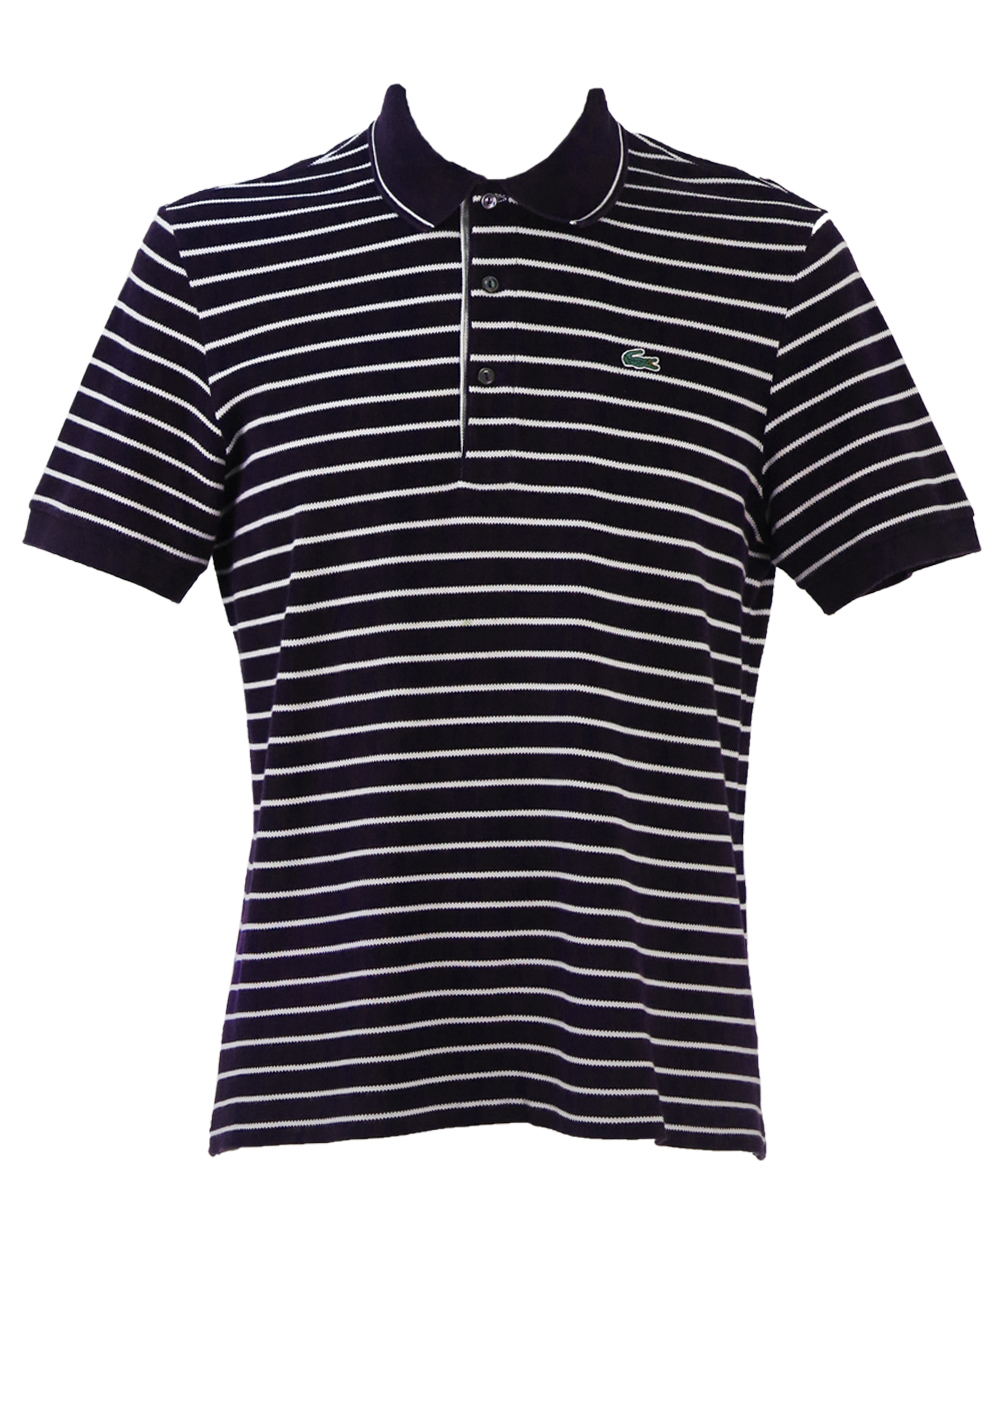 28de1c9e991 Lacoste Navy Blue & White Striped Polo Shirt – M/L – Reign Vintage